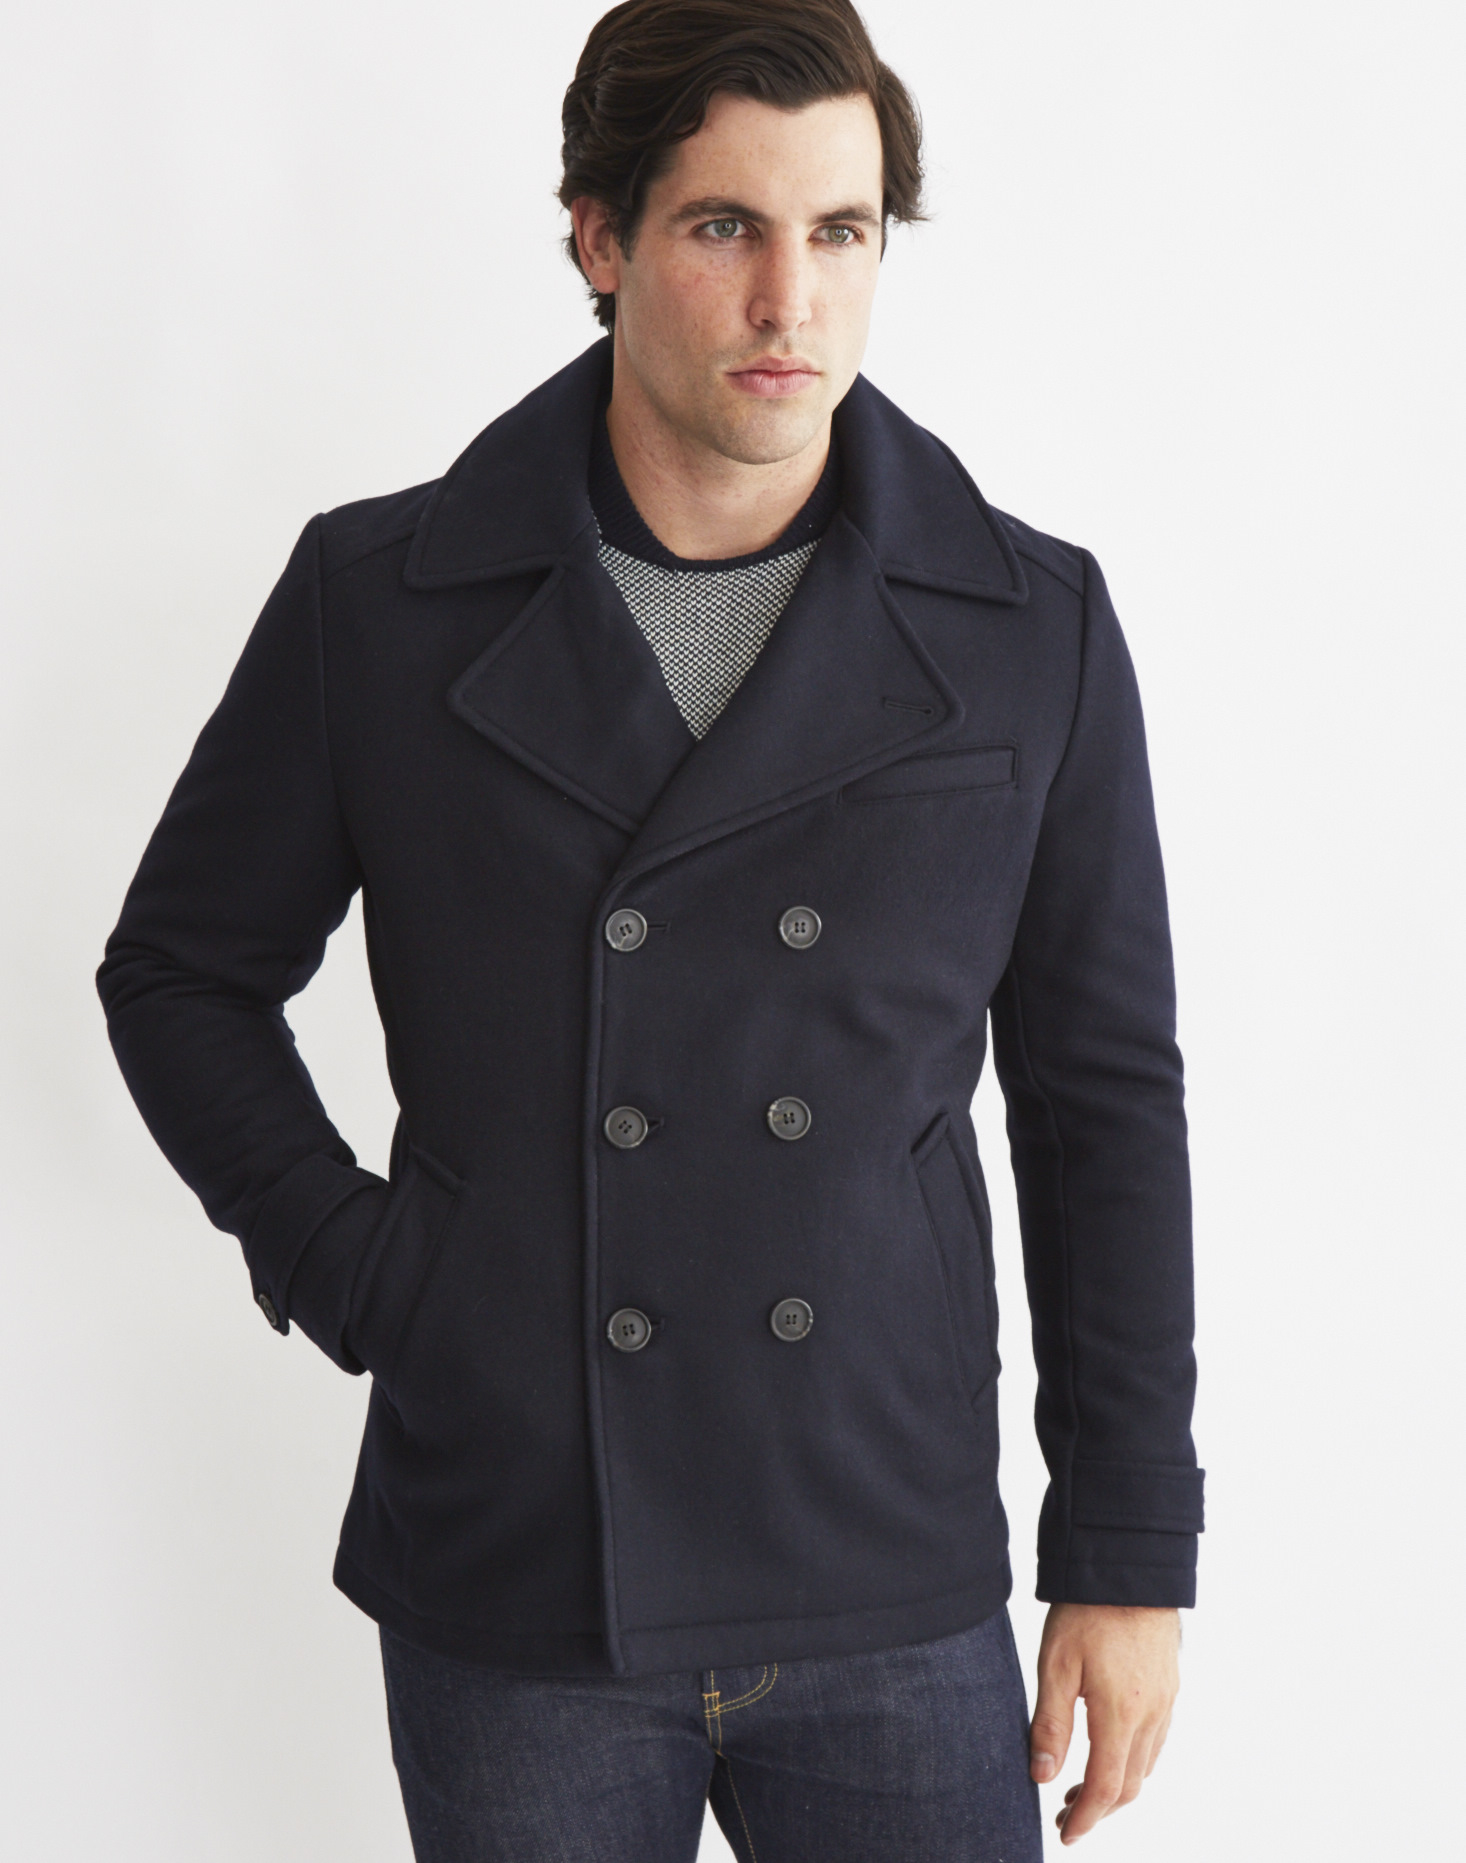 Product Features button front closure, black pea coat trench coat over coats slim fit.